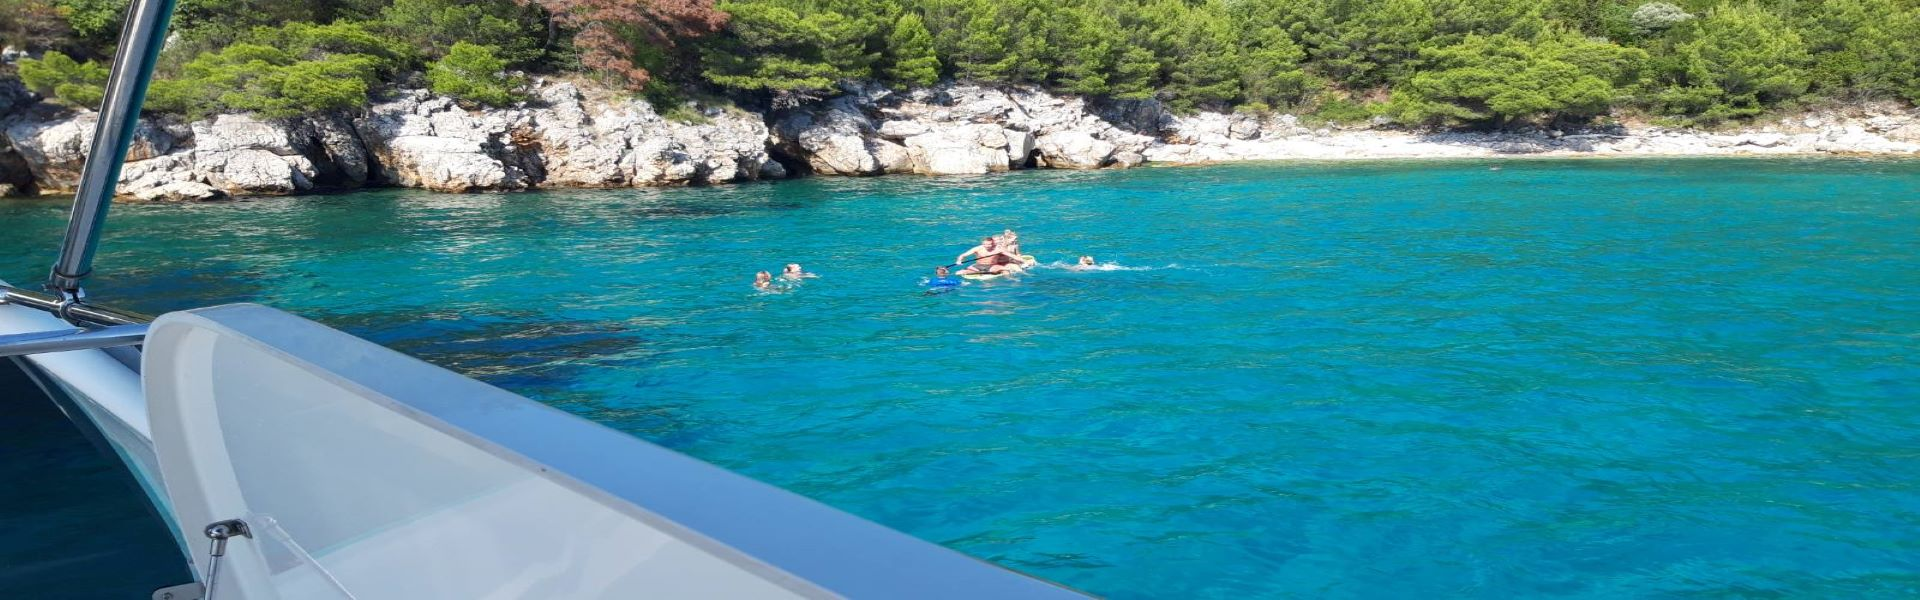 WHEN IS YACHTING SEASON IN THE ADRIATIC?